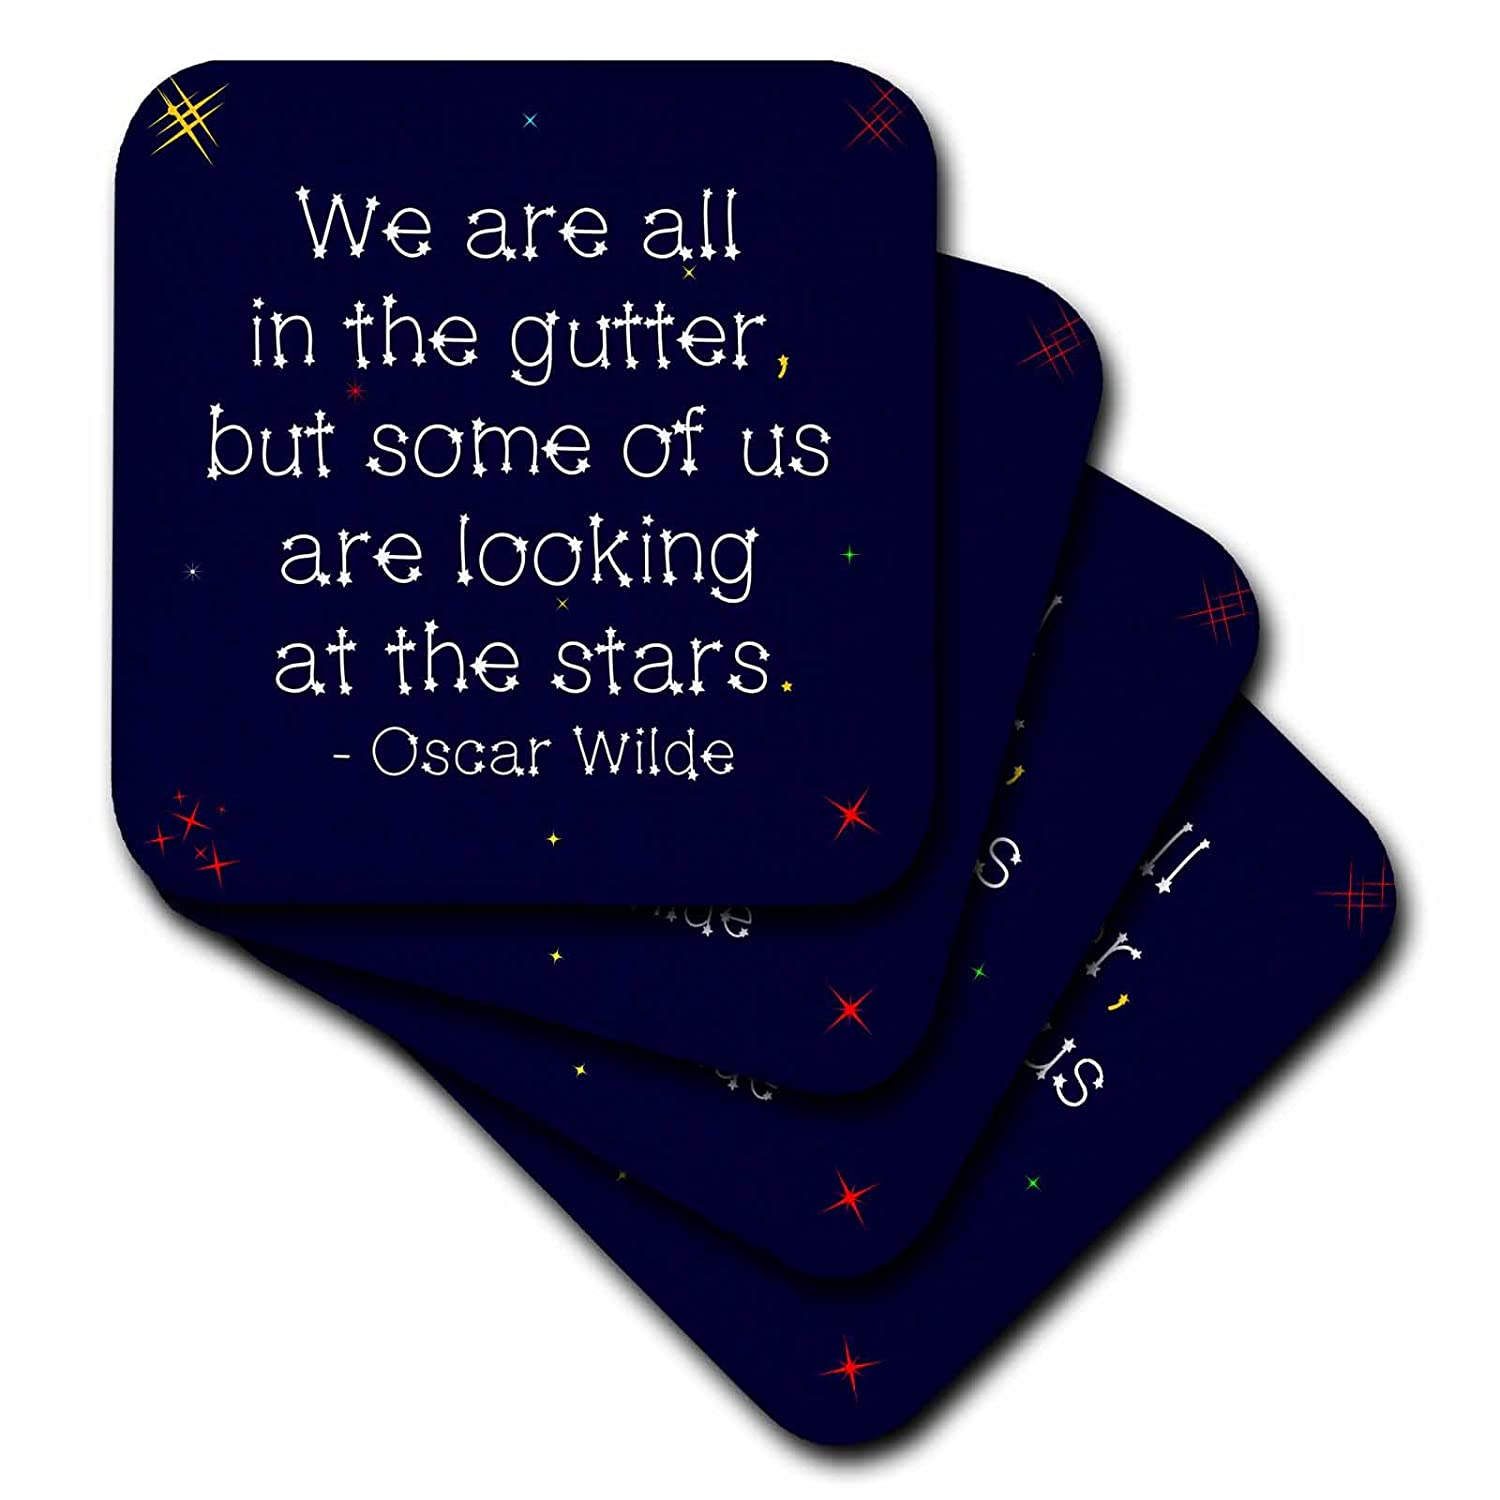 3drose Alexisデザイン – 引用Oscar Wilde – Oscar Wilde Quote We Are All In The Gutterが、 – In Star Styledテキスト – コースター set-of-8-Ceramic cst_285936_4 set-of-8-Ceramic  B07FSX4CCD